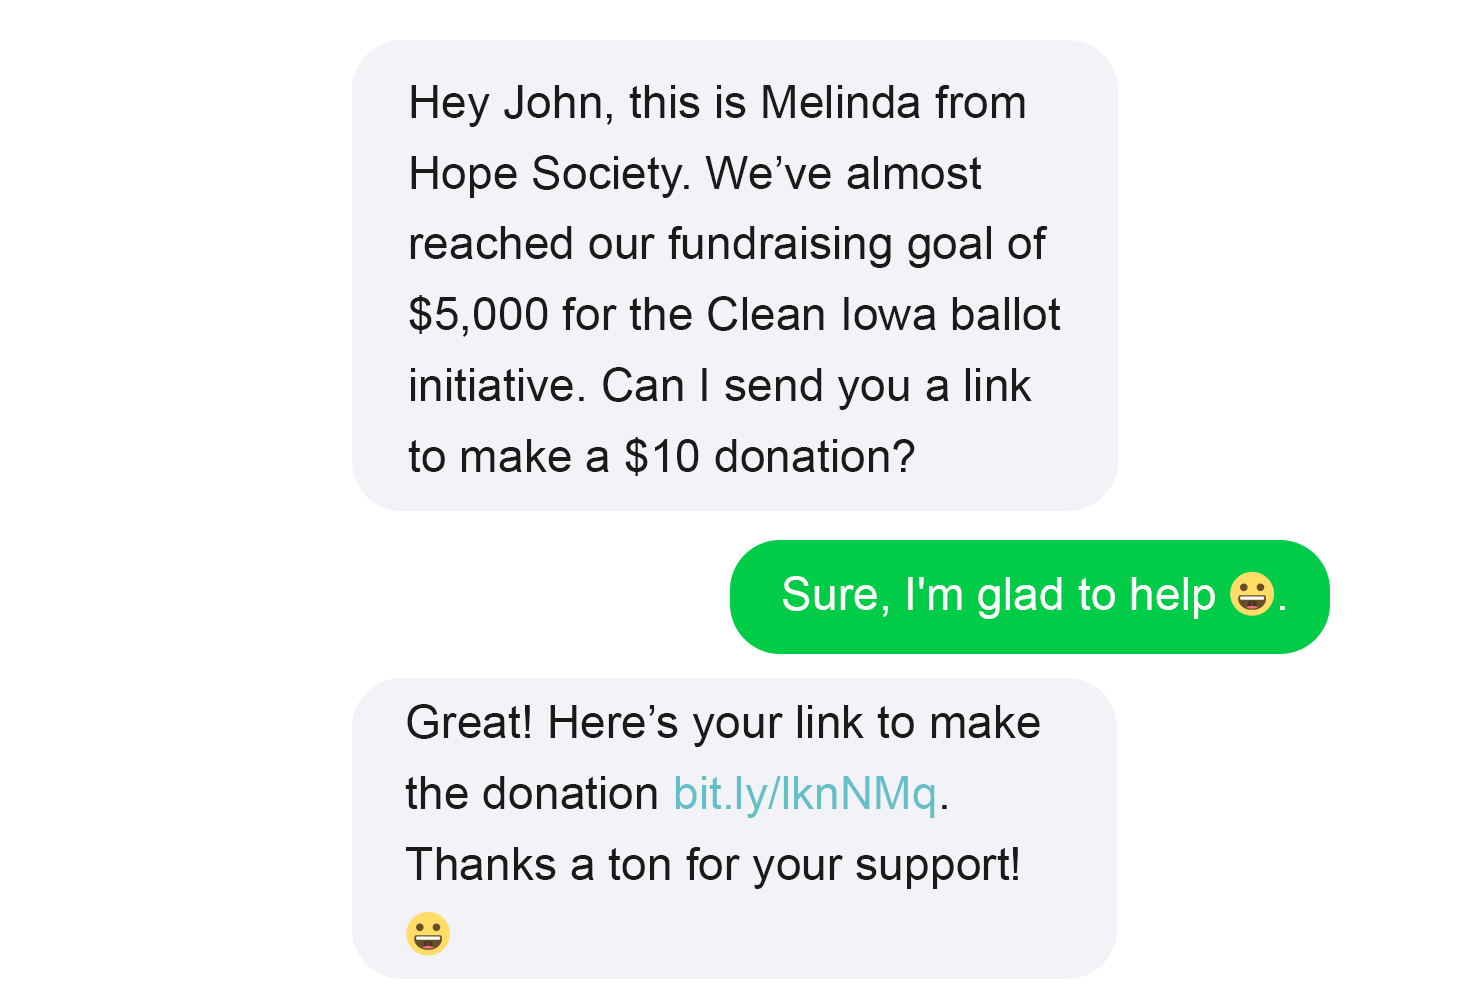 fundraising guide to peer to peer texting collective texting by